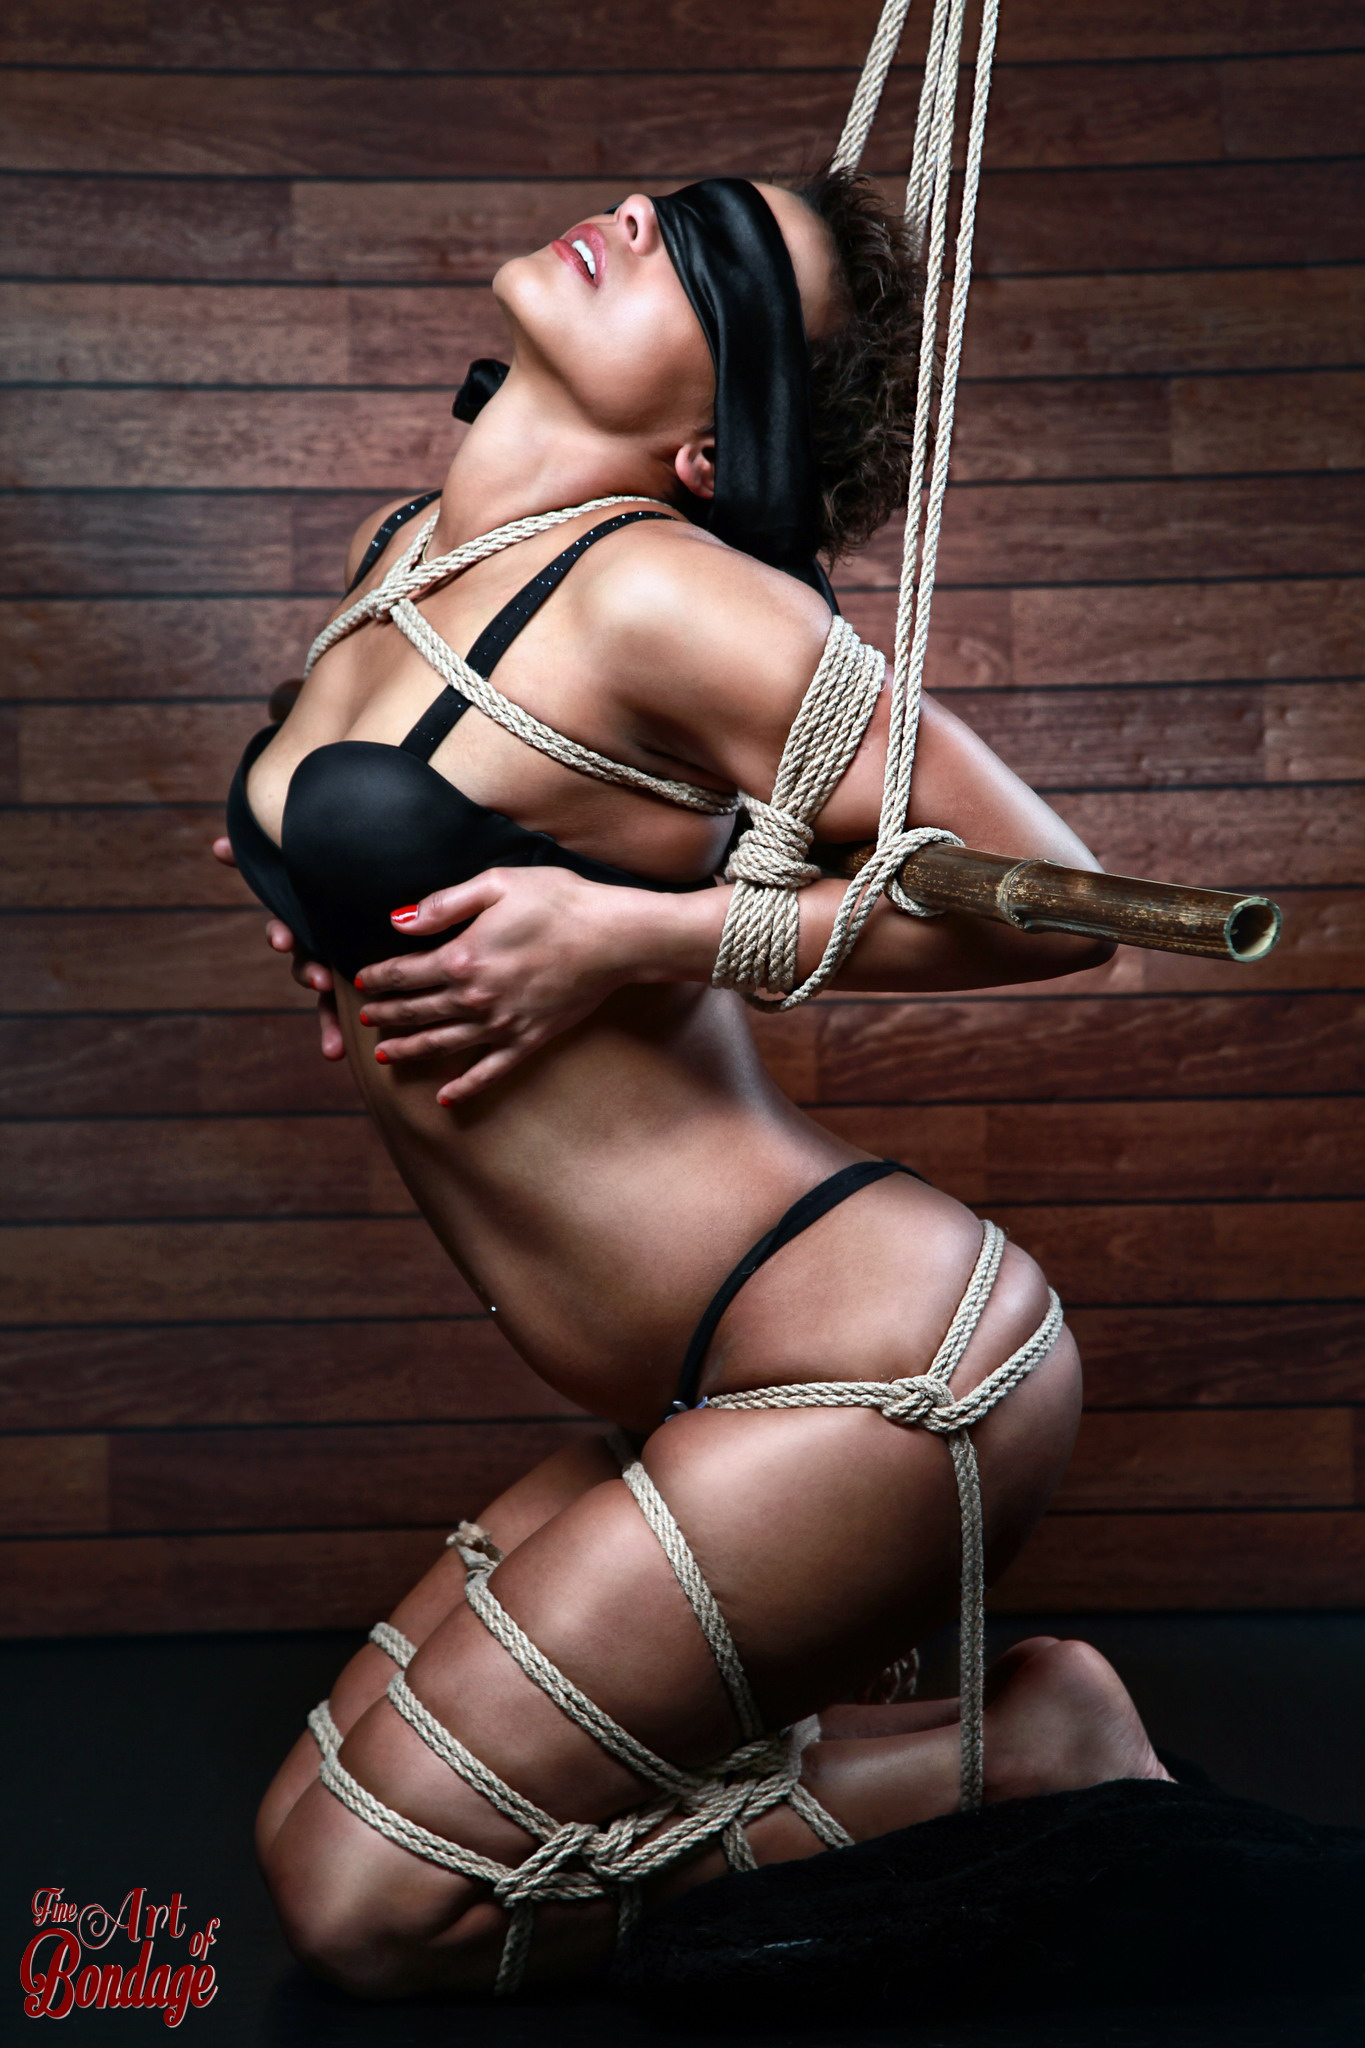 Gallery - Fine Art Of Bondage-5466